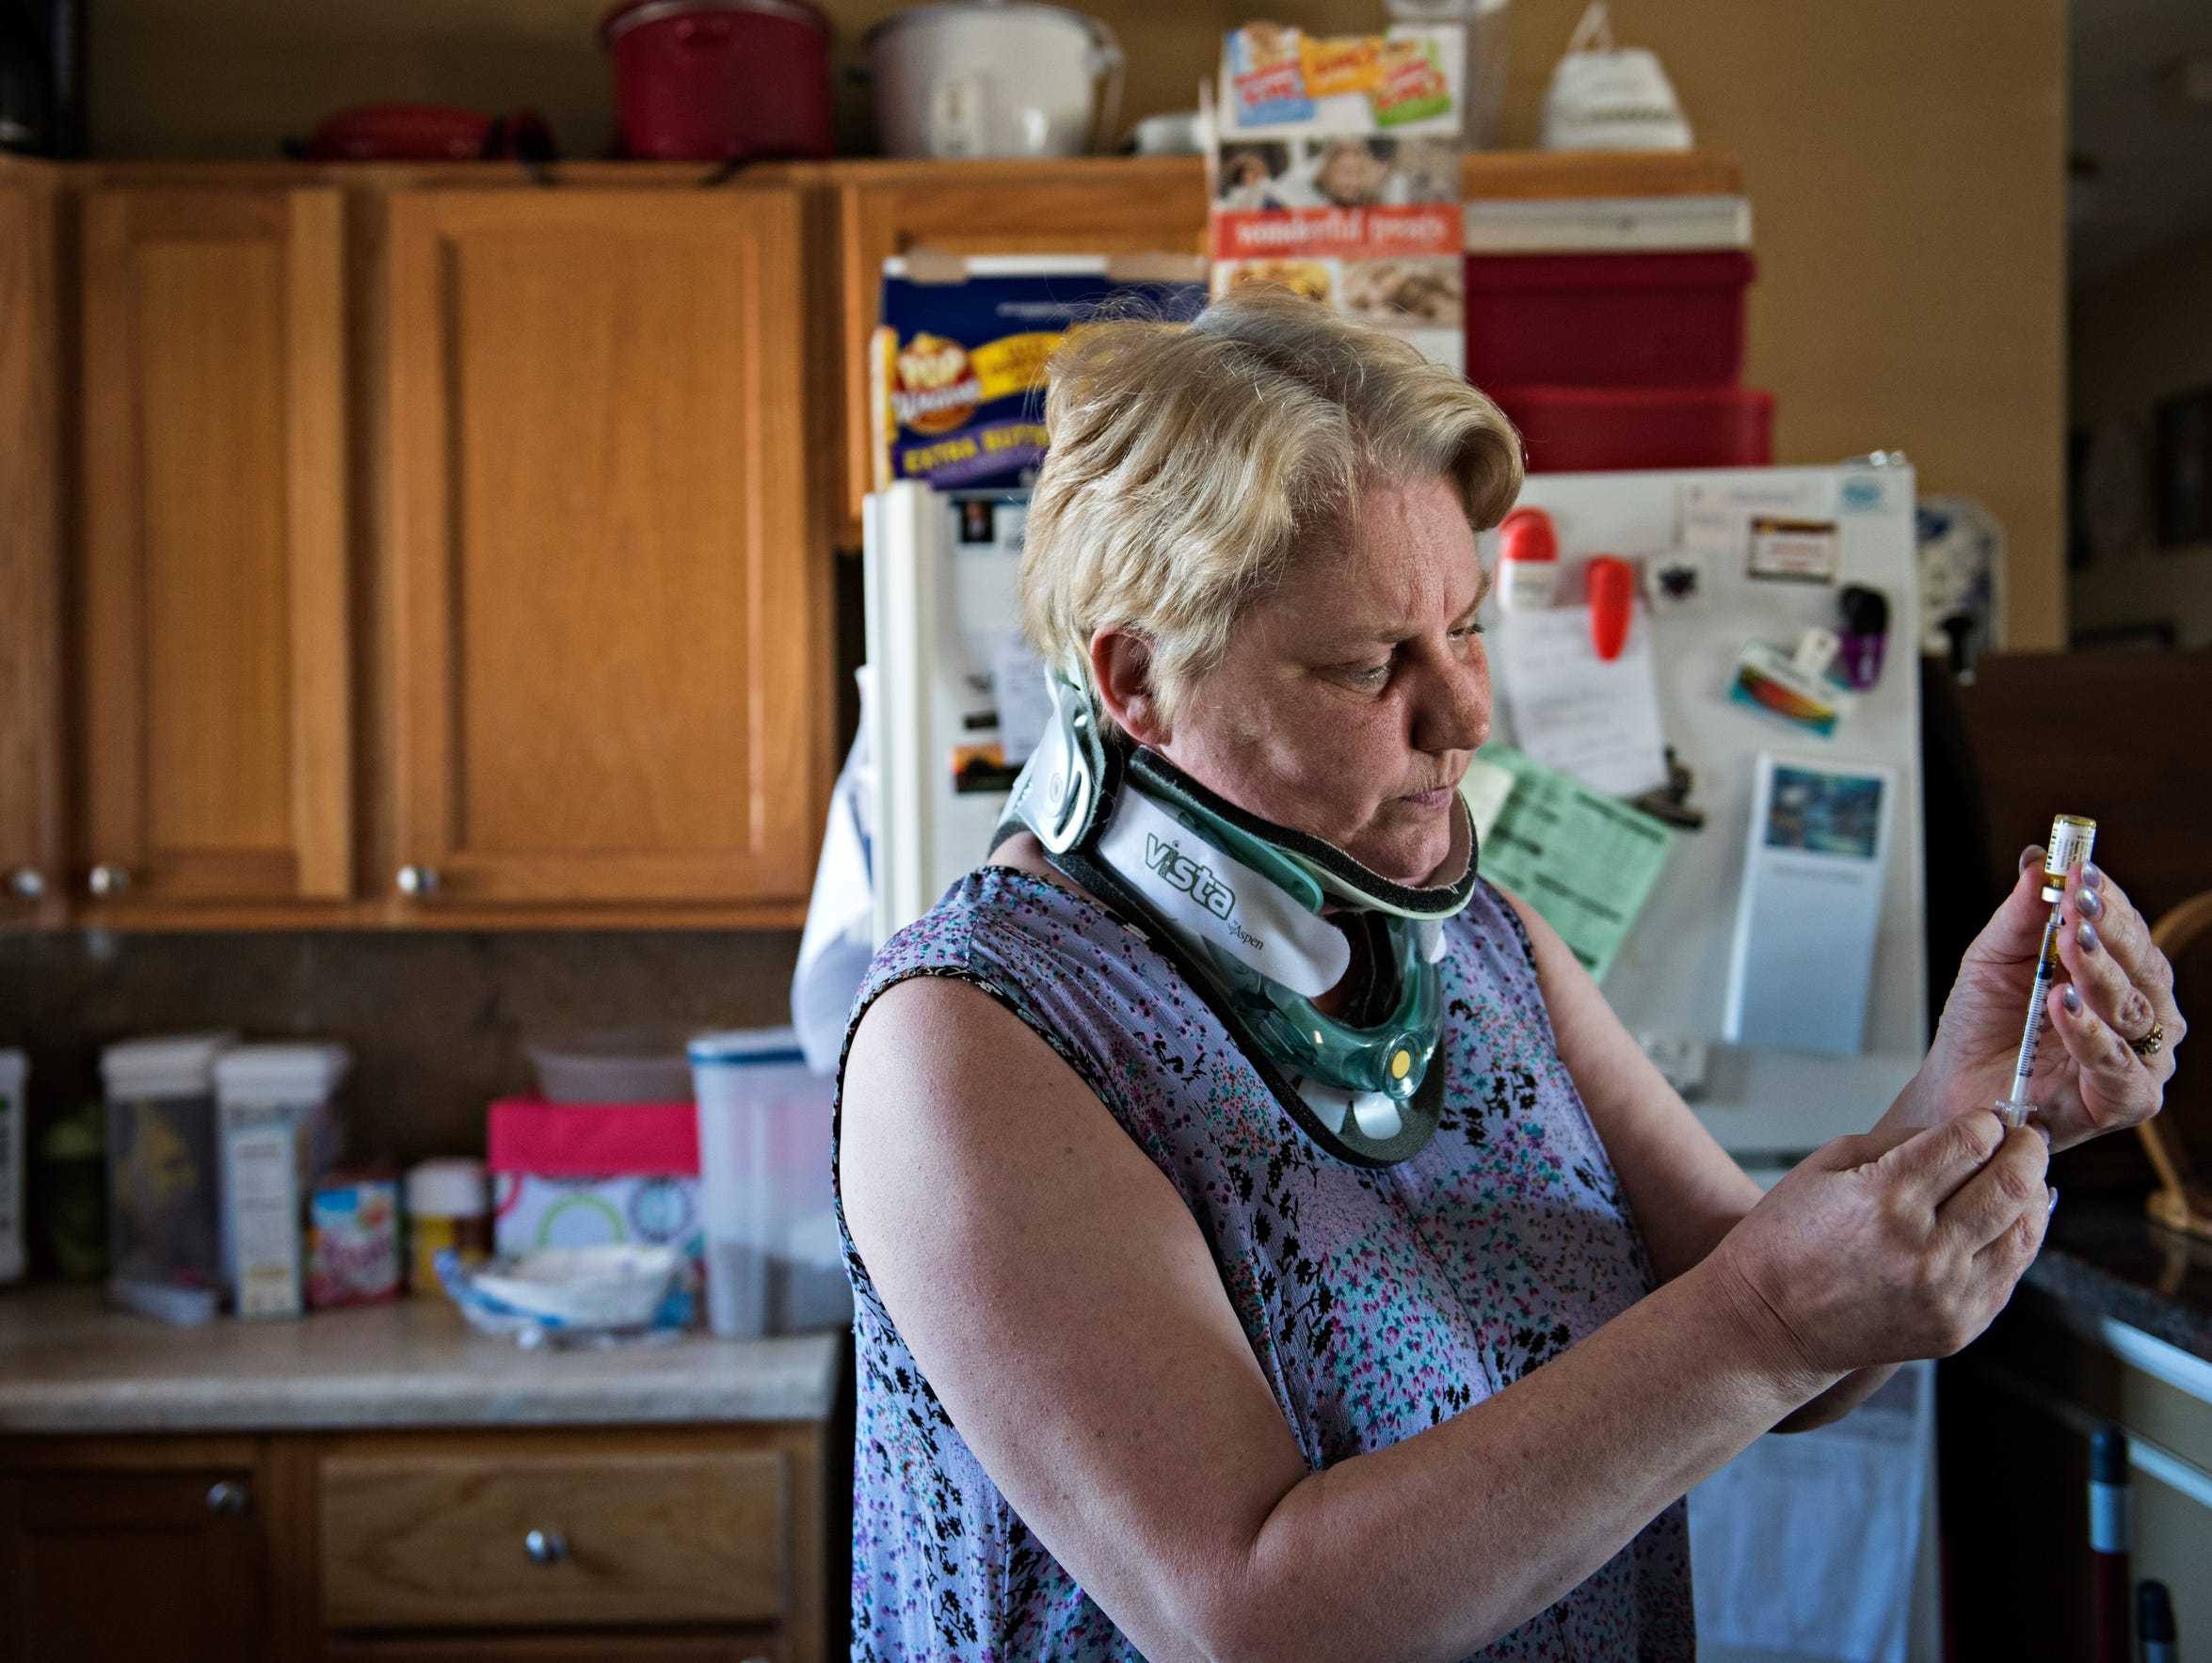 Dilemma over deductibles: Costs crippling middle class